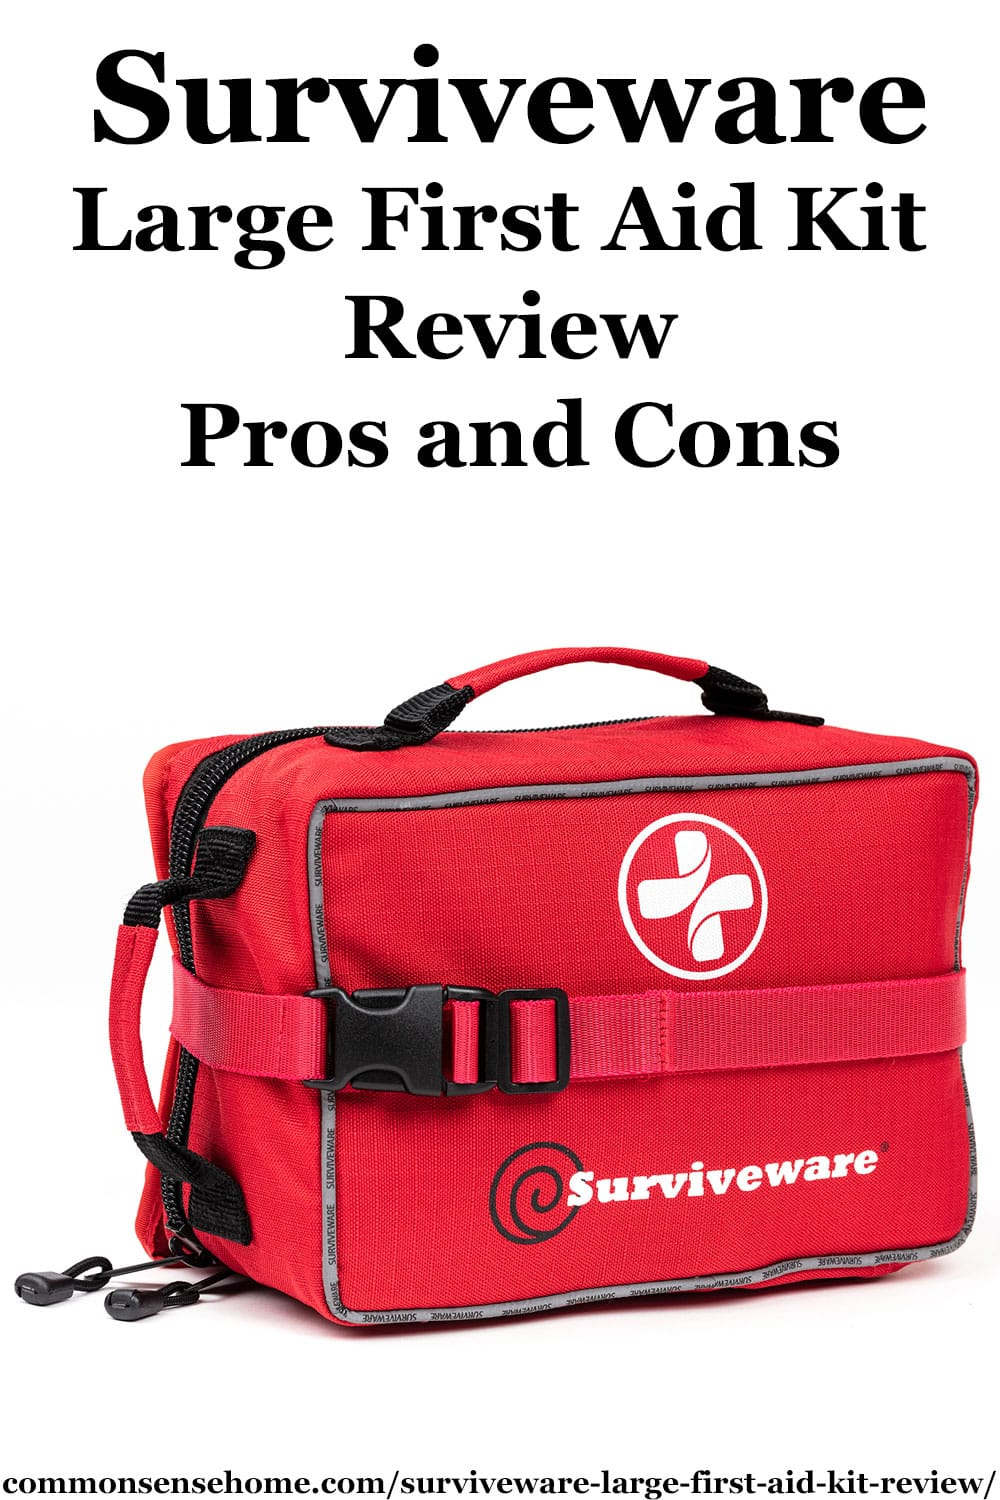 Surviveware Large First Aid Kit Review - Pros and Cons